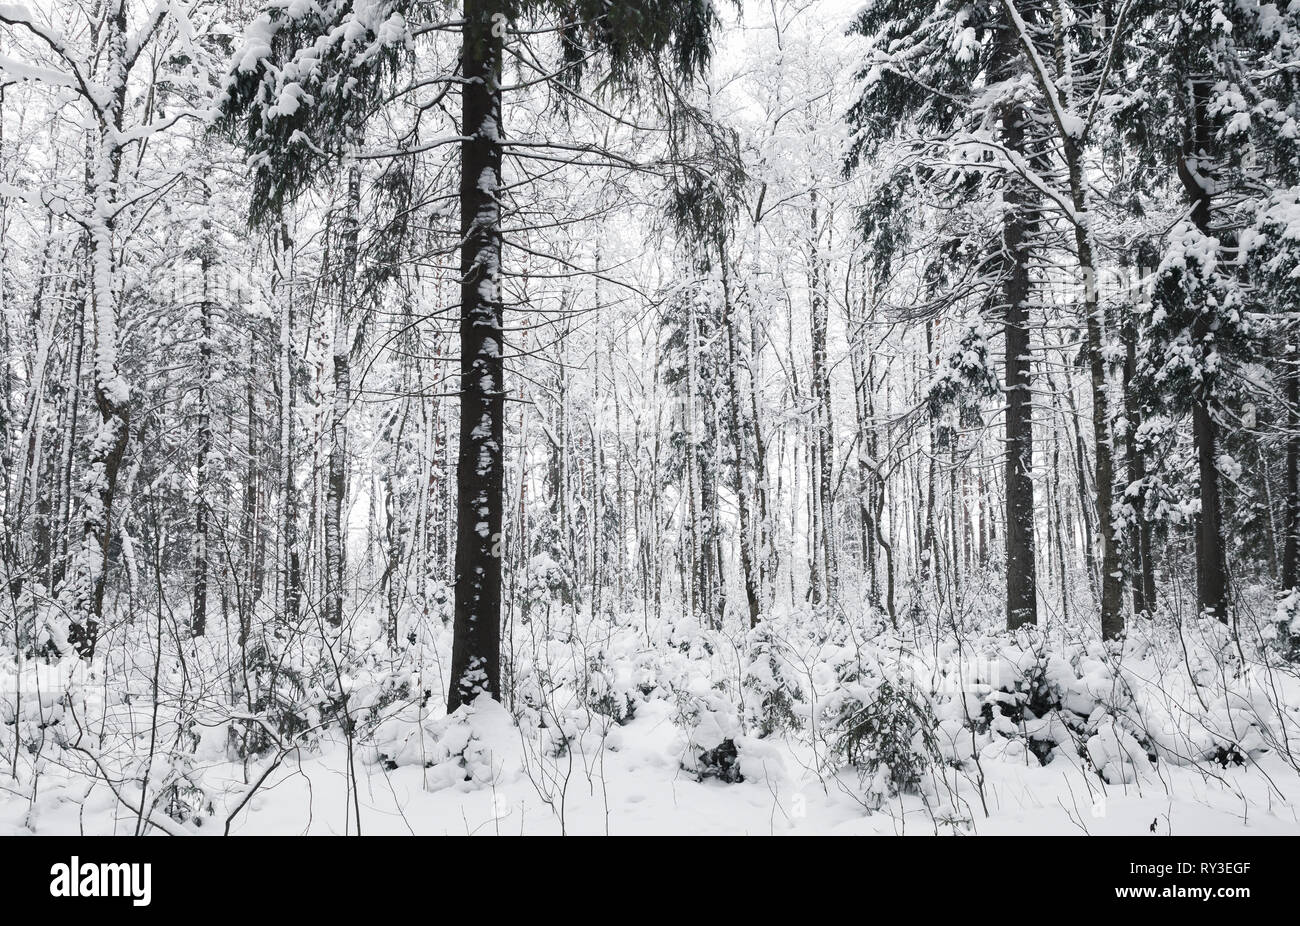 Snowy spruces in European forest, winter landscape. Background photo - Stock Image